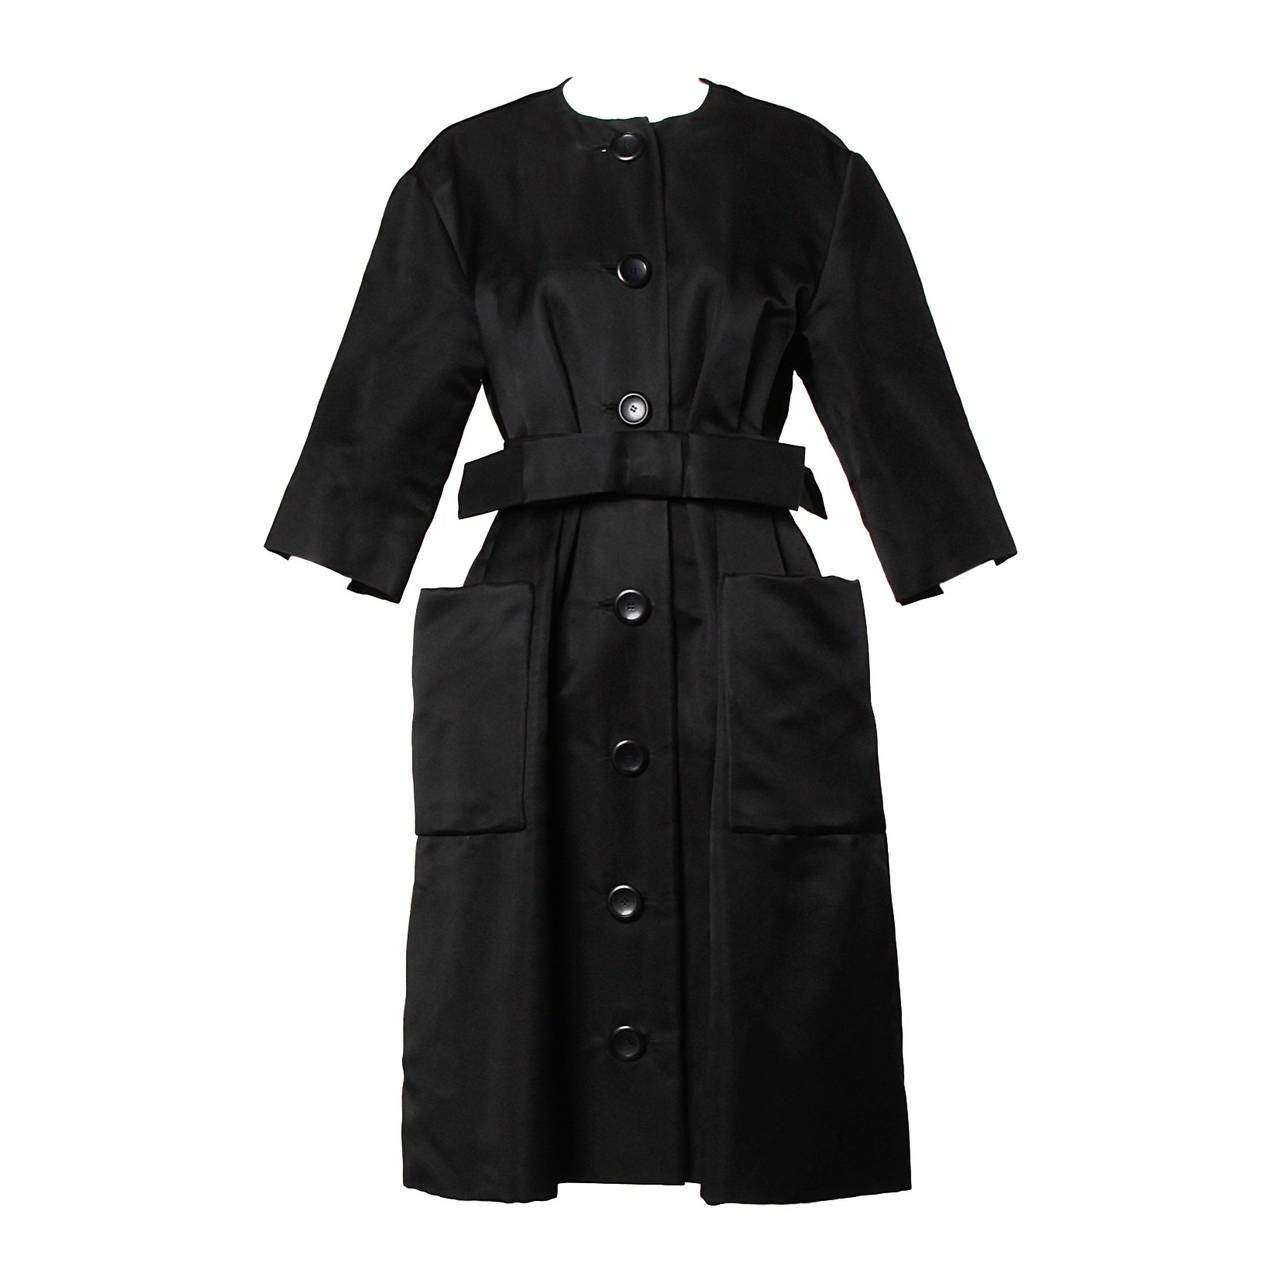 Haute Couture 1959 Yves Saint Laurent For Christian Dior Vintage Coat Dress For Sale At 1stdibs